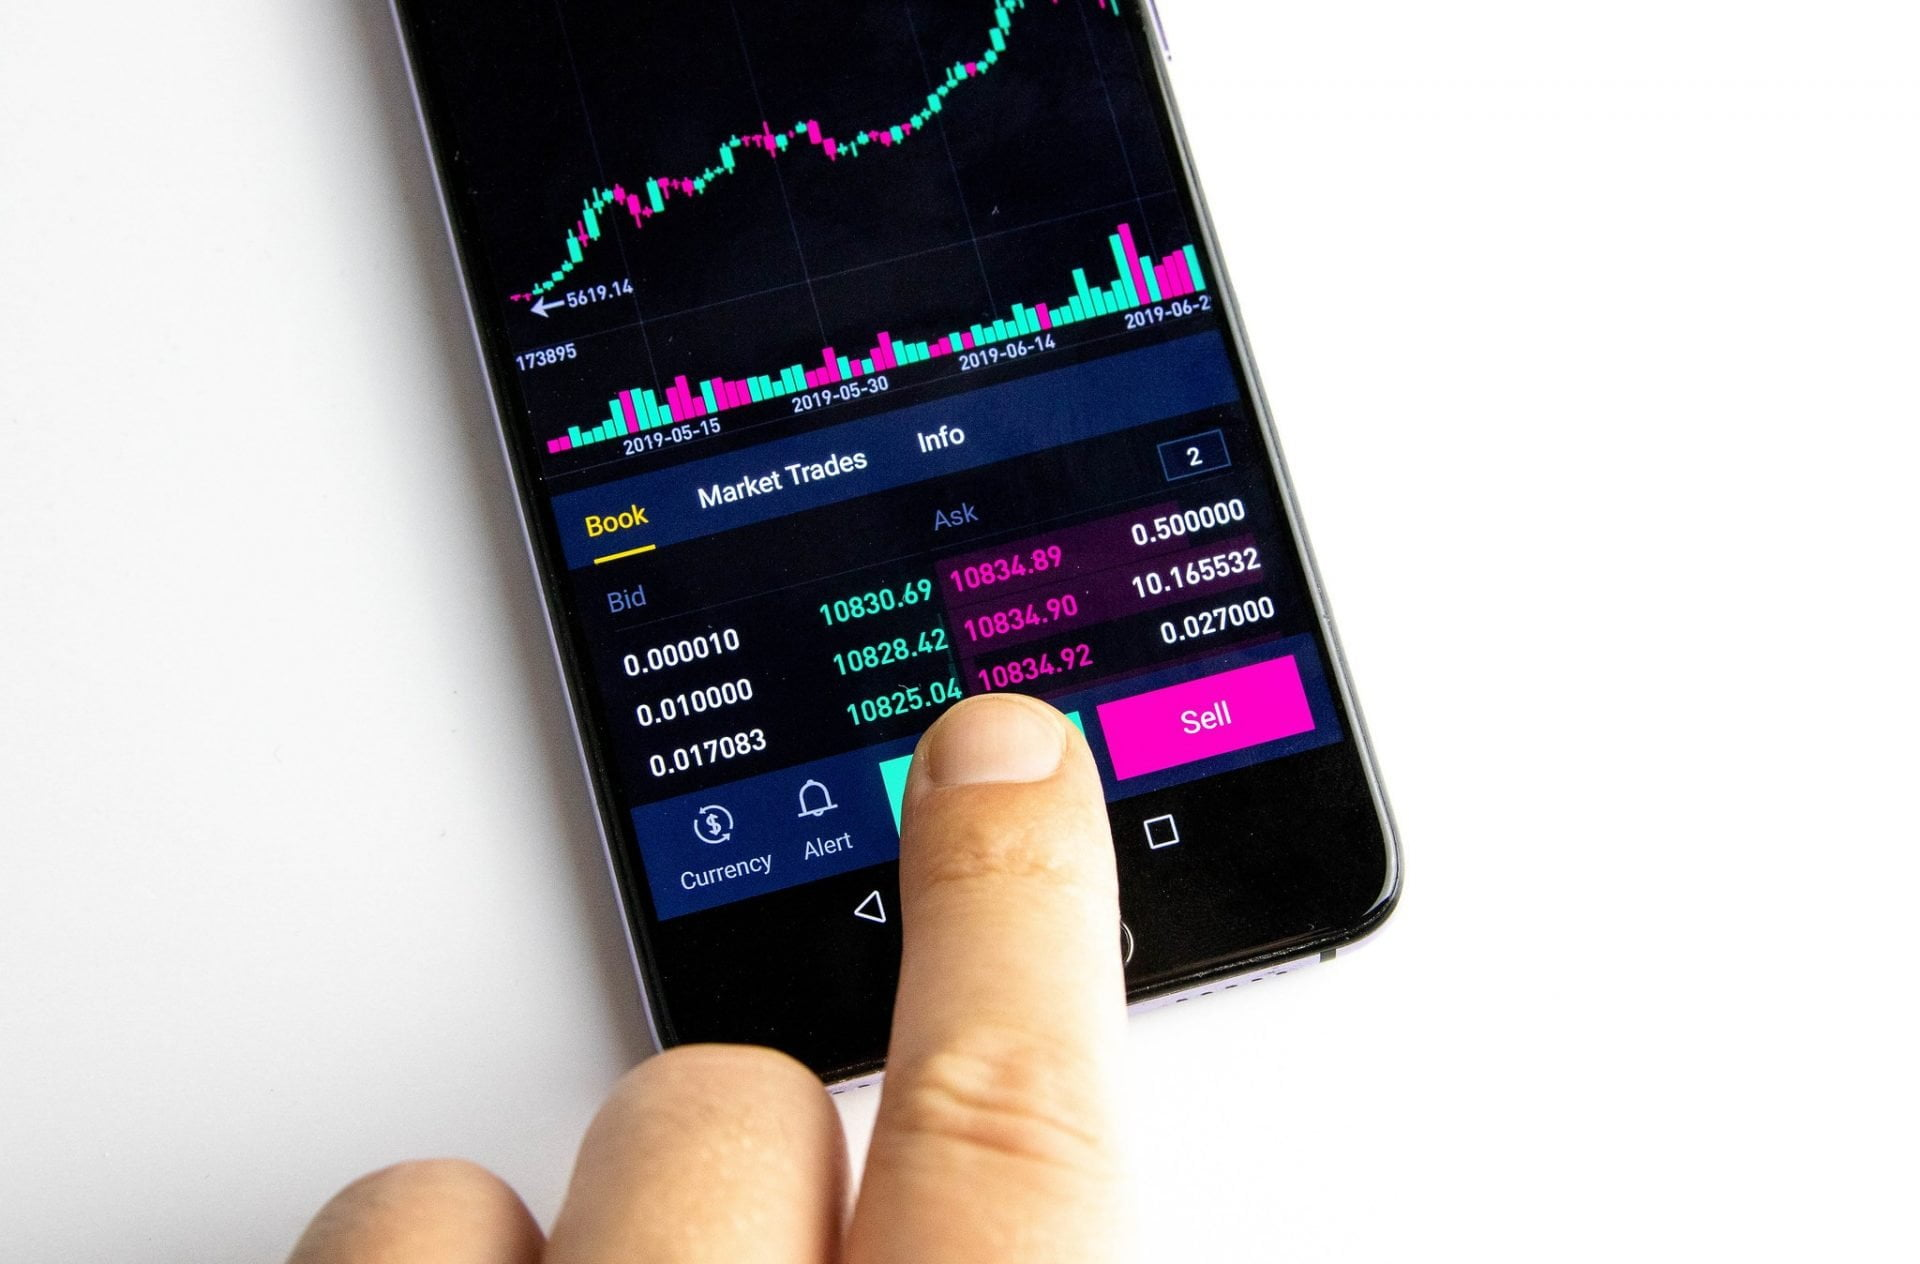 Altcoins May Finally Start to Outperform Bitcoin (BTC): Let's Take a Look 20